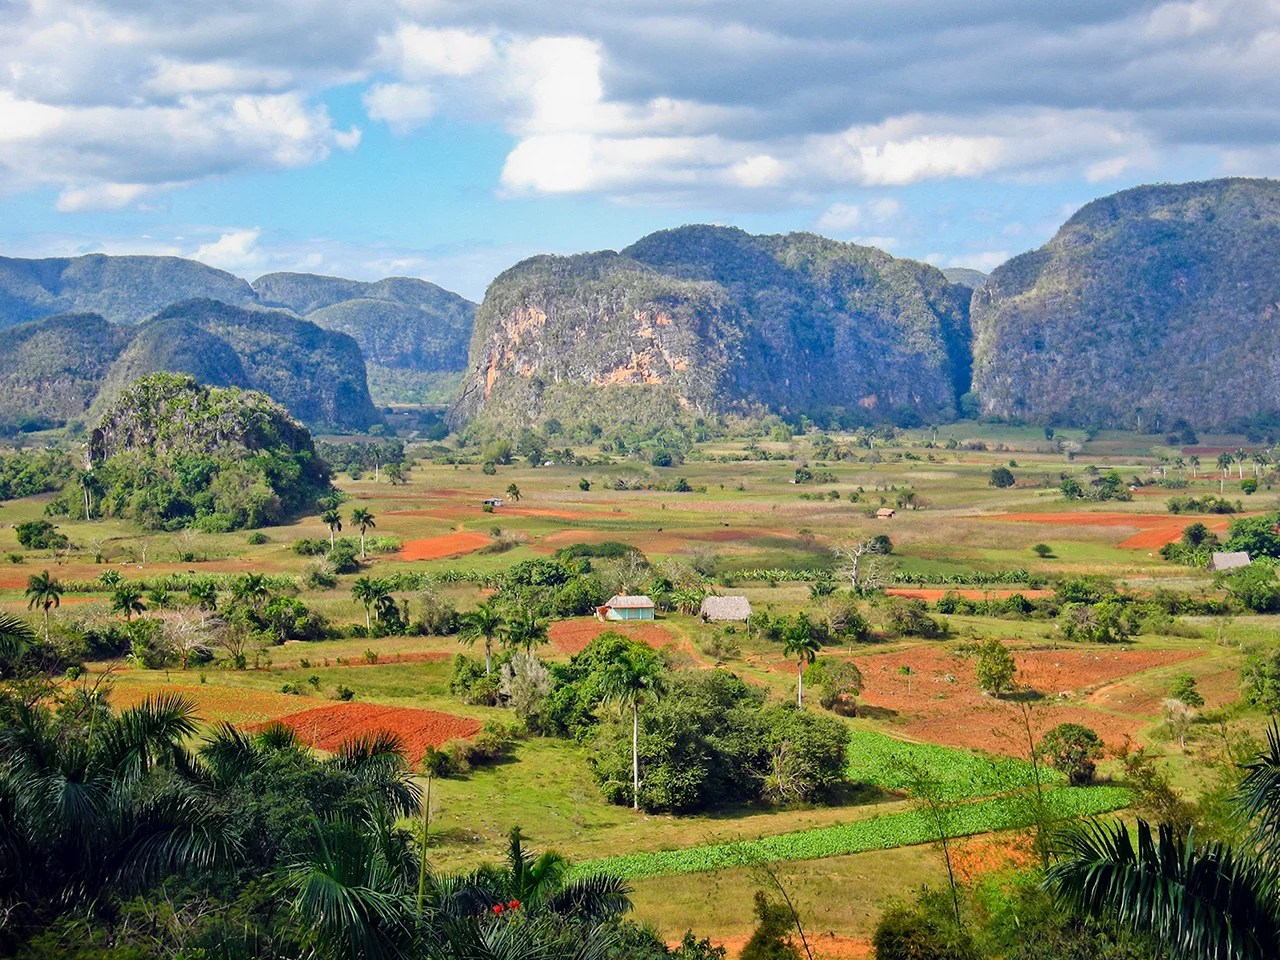 The mogotes are peculiar limestone hills with rounded top that emerge from the wide Valle de Viñales, famous for the tobacco growing. The valley was declared a UNESCO World Heritage Site in 1999. (Photo by oriredmouse/Getty Images)